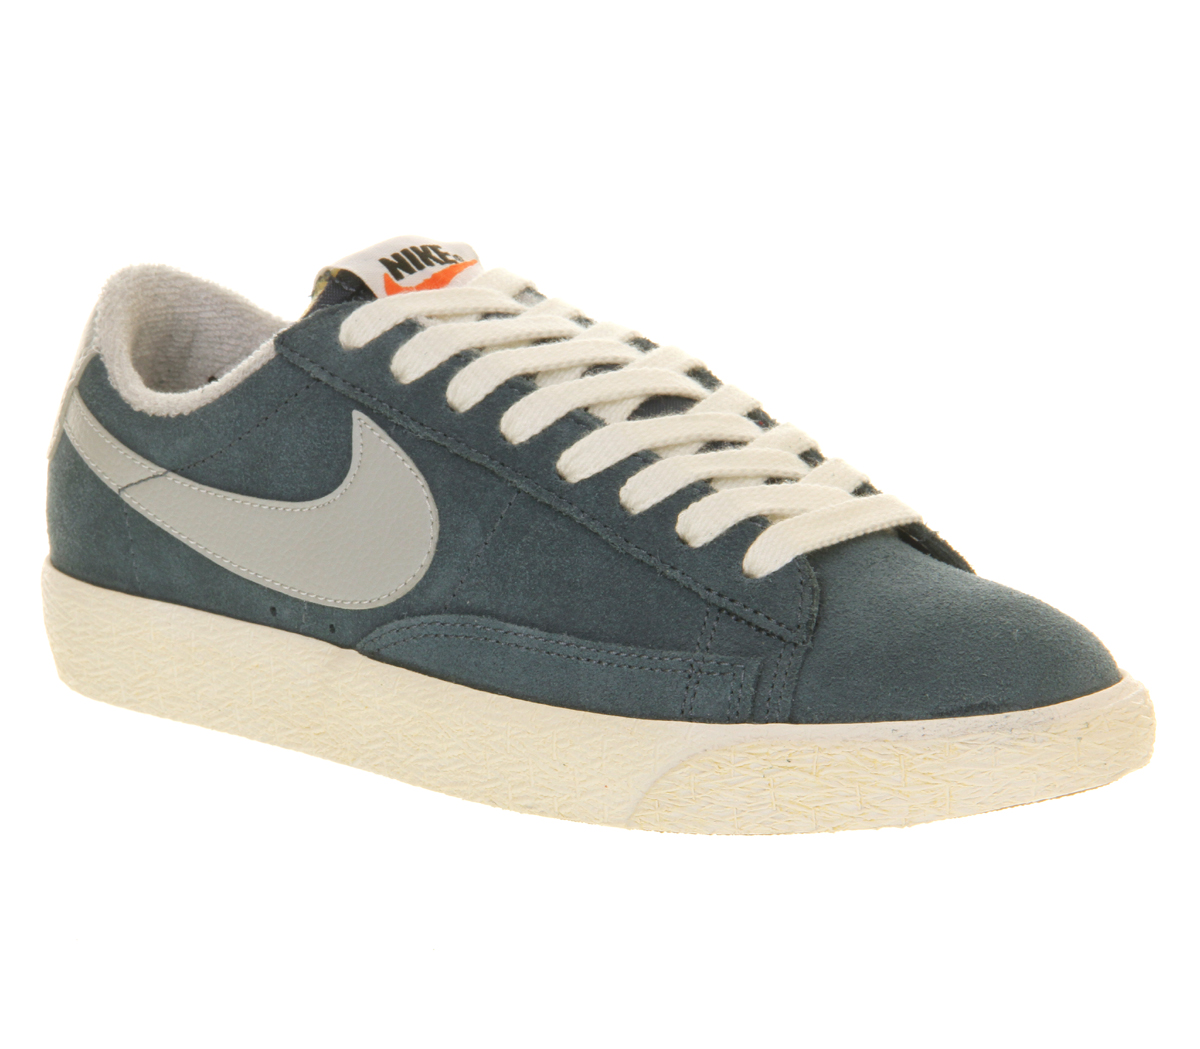 High Thunder Sb Skateboarding Men's Ankle Thunder Shoe Suede NIKE Zoom Blue Low Blue Blazer COURSE(S) CTRY Shoe Blazer Zoom Thunder Ankle NIKE Low Men's Blue Thunder Skateboarding High Suede Sb Blue 8 Sep - 11 Sep.